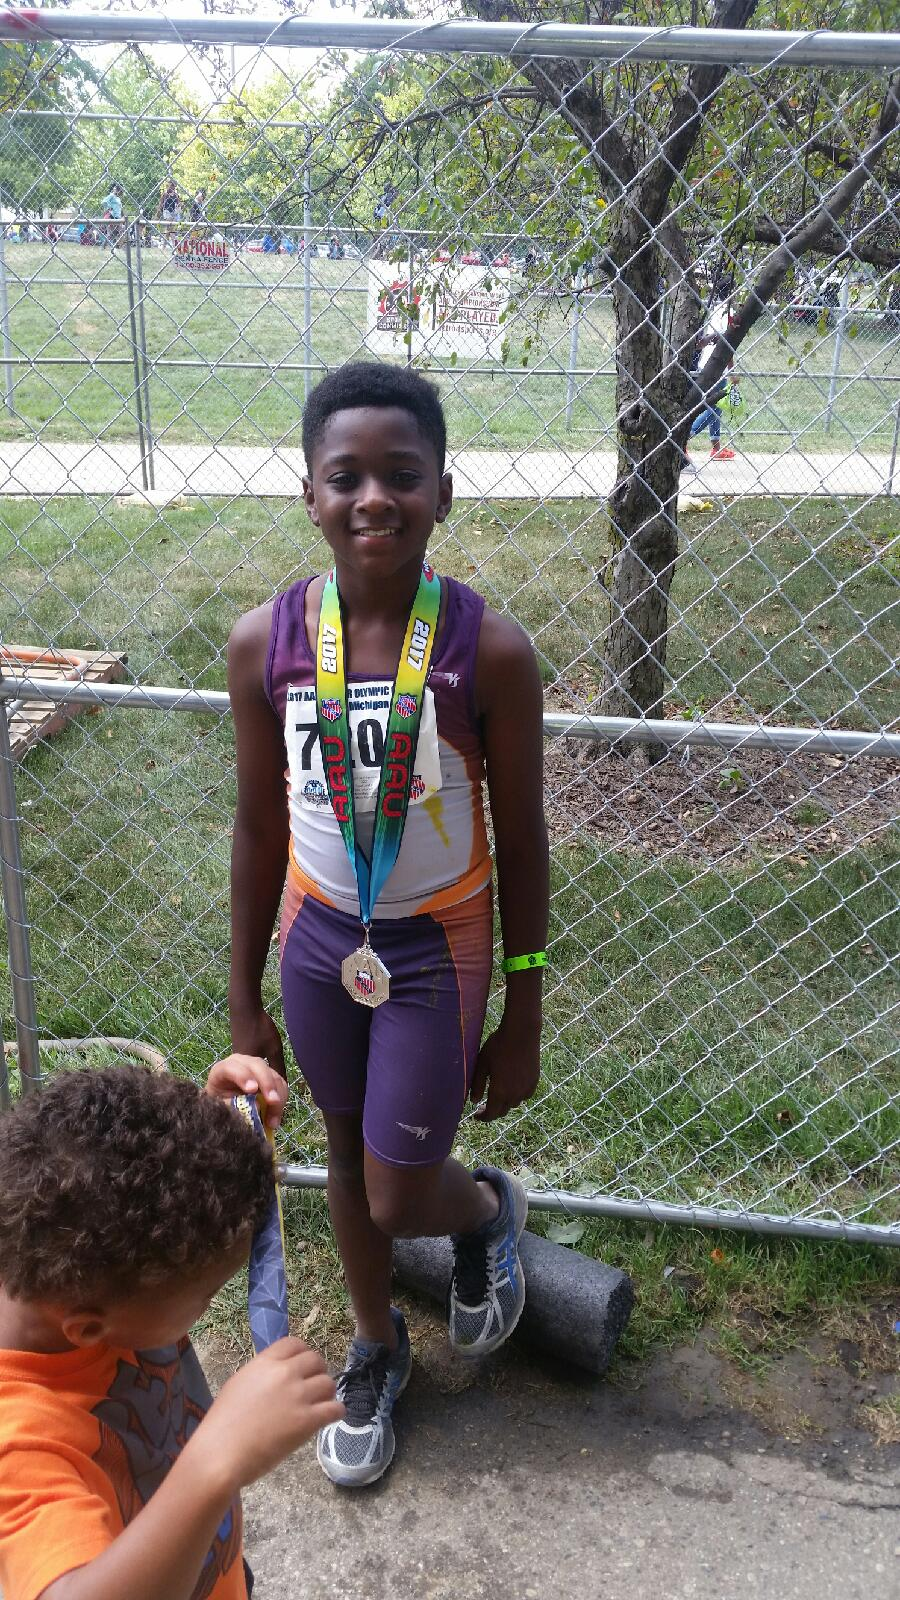 Damario 2nd place in turbo javelin